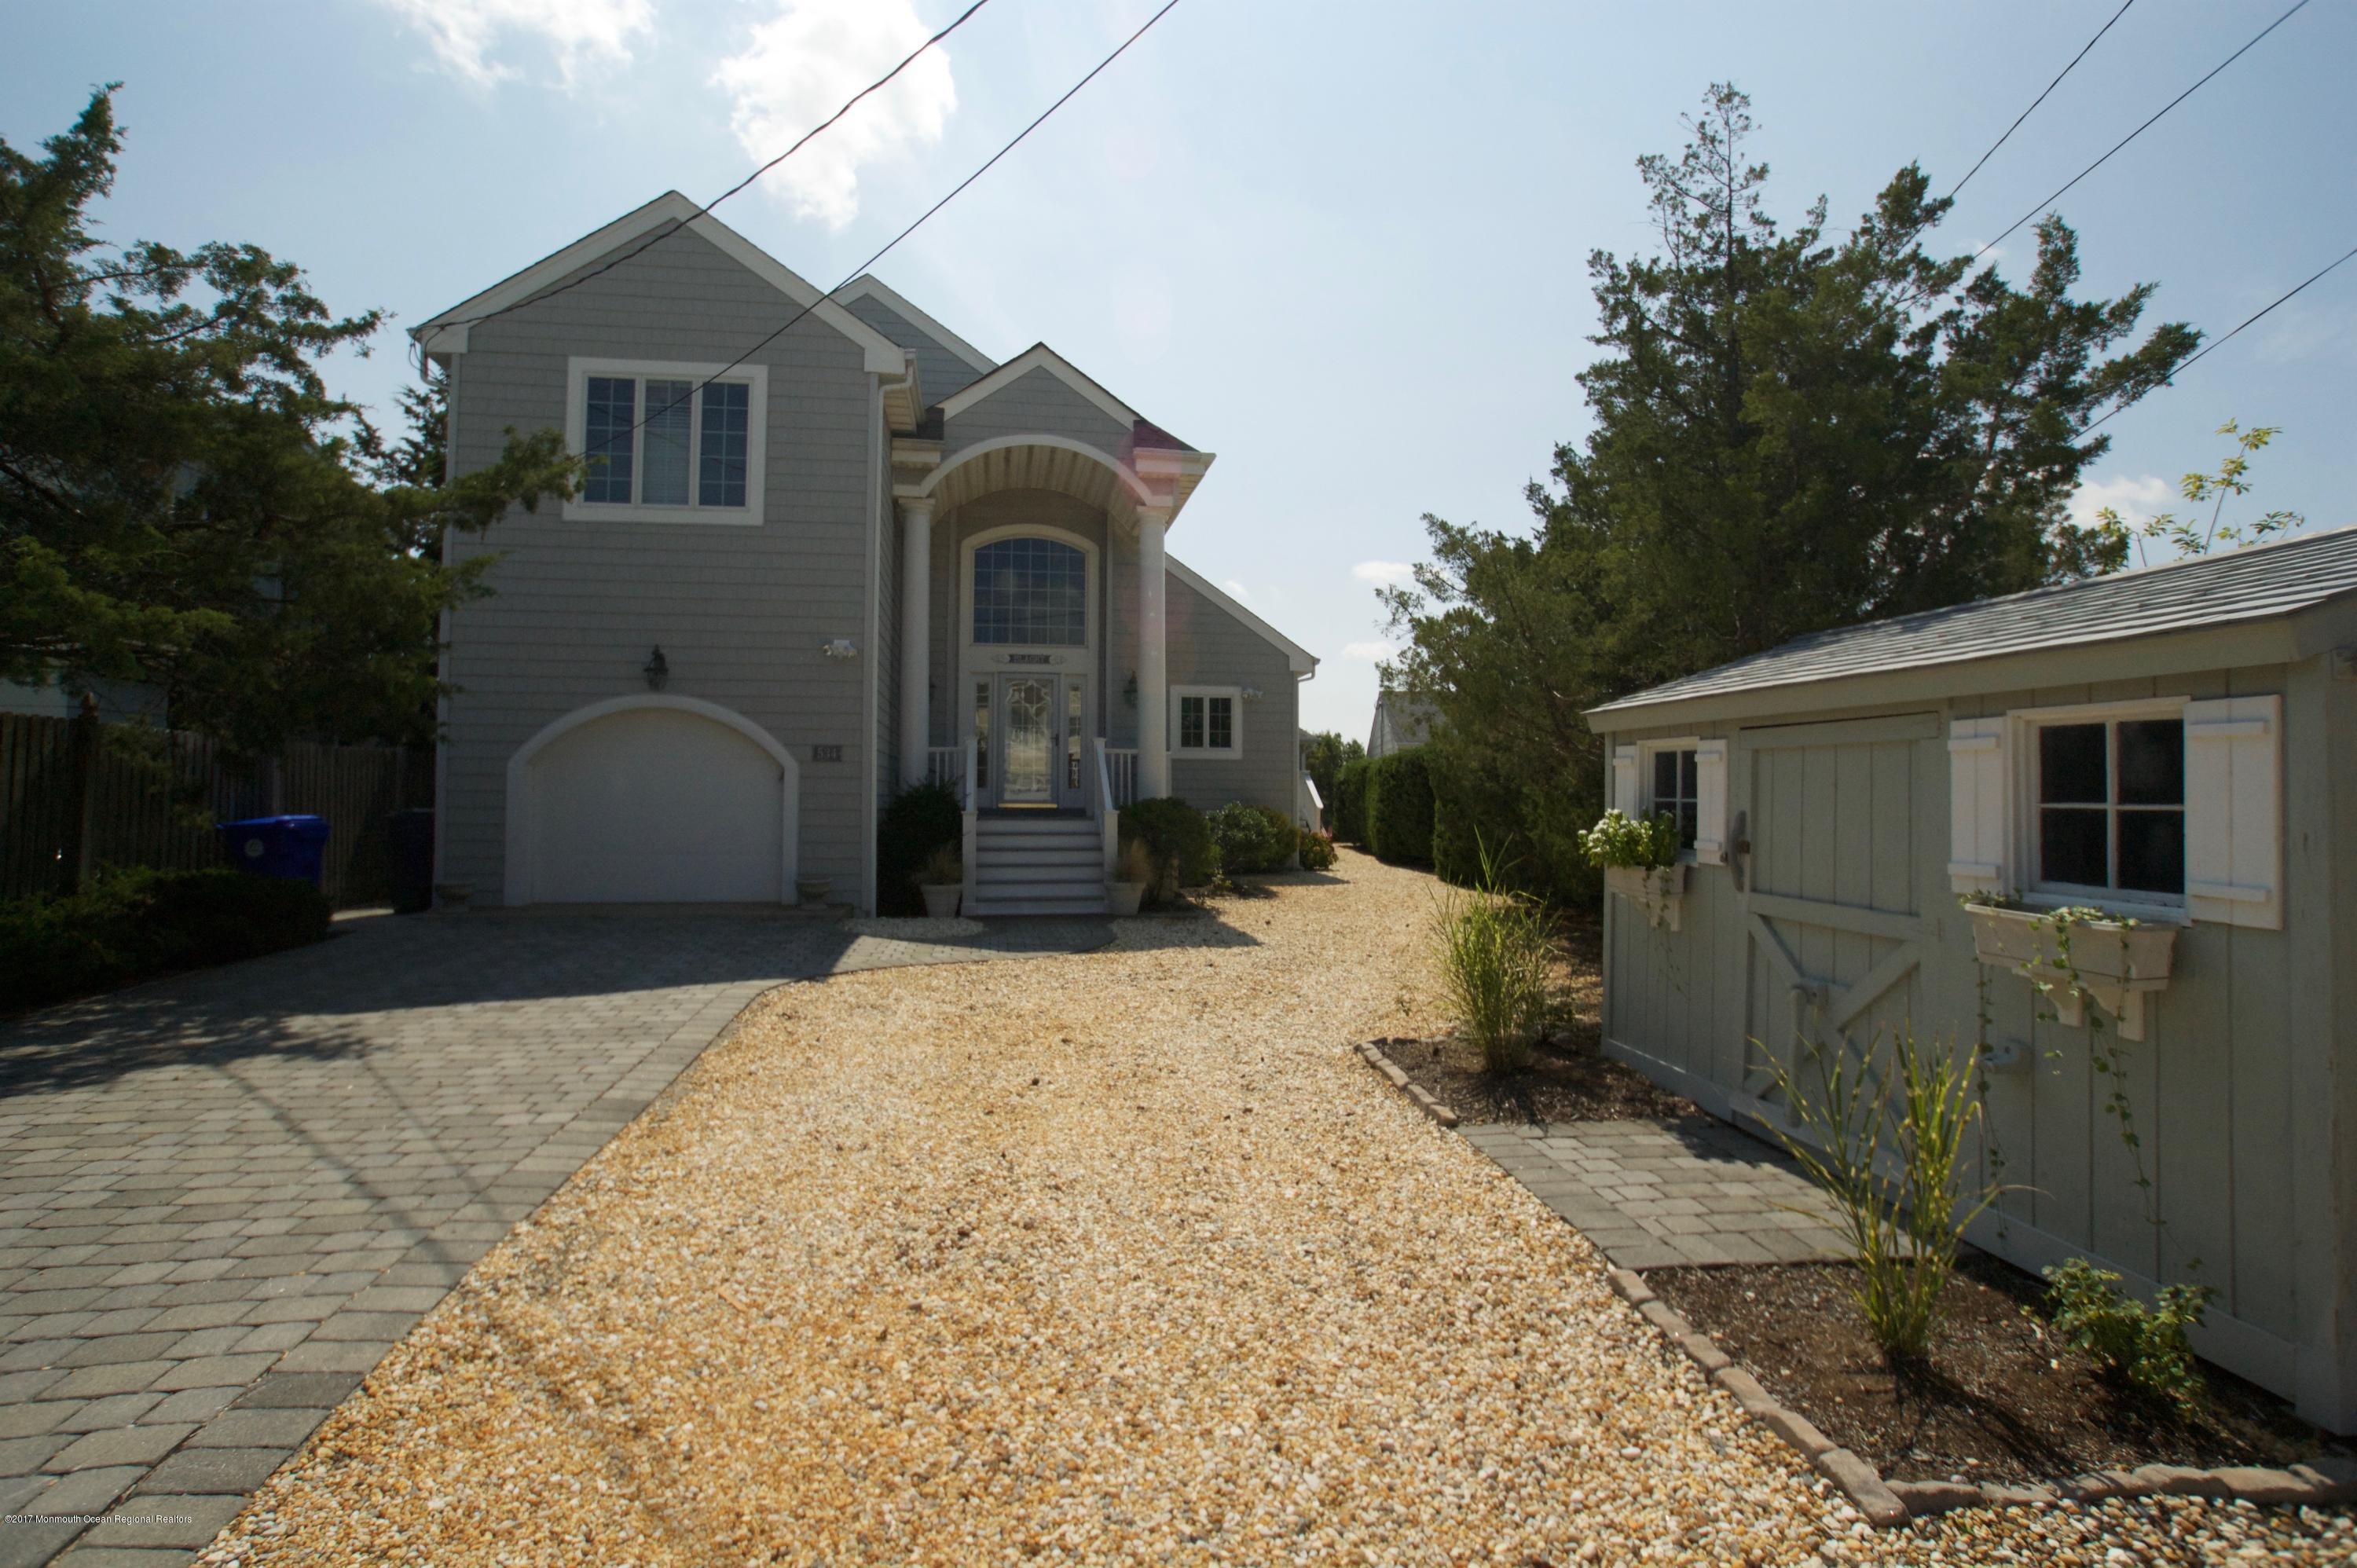 Photo of 534 Normandy Drive, Normandy Beach, NJ 08739